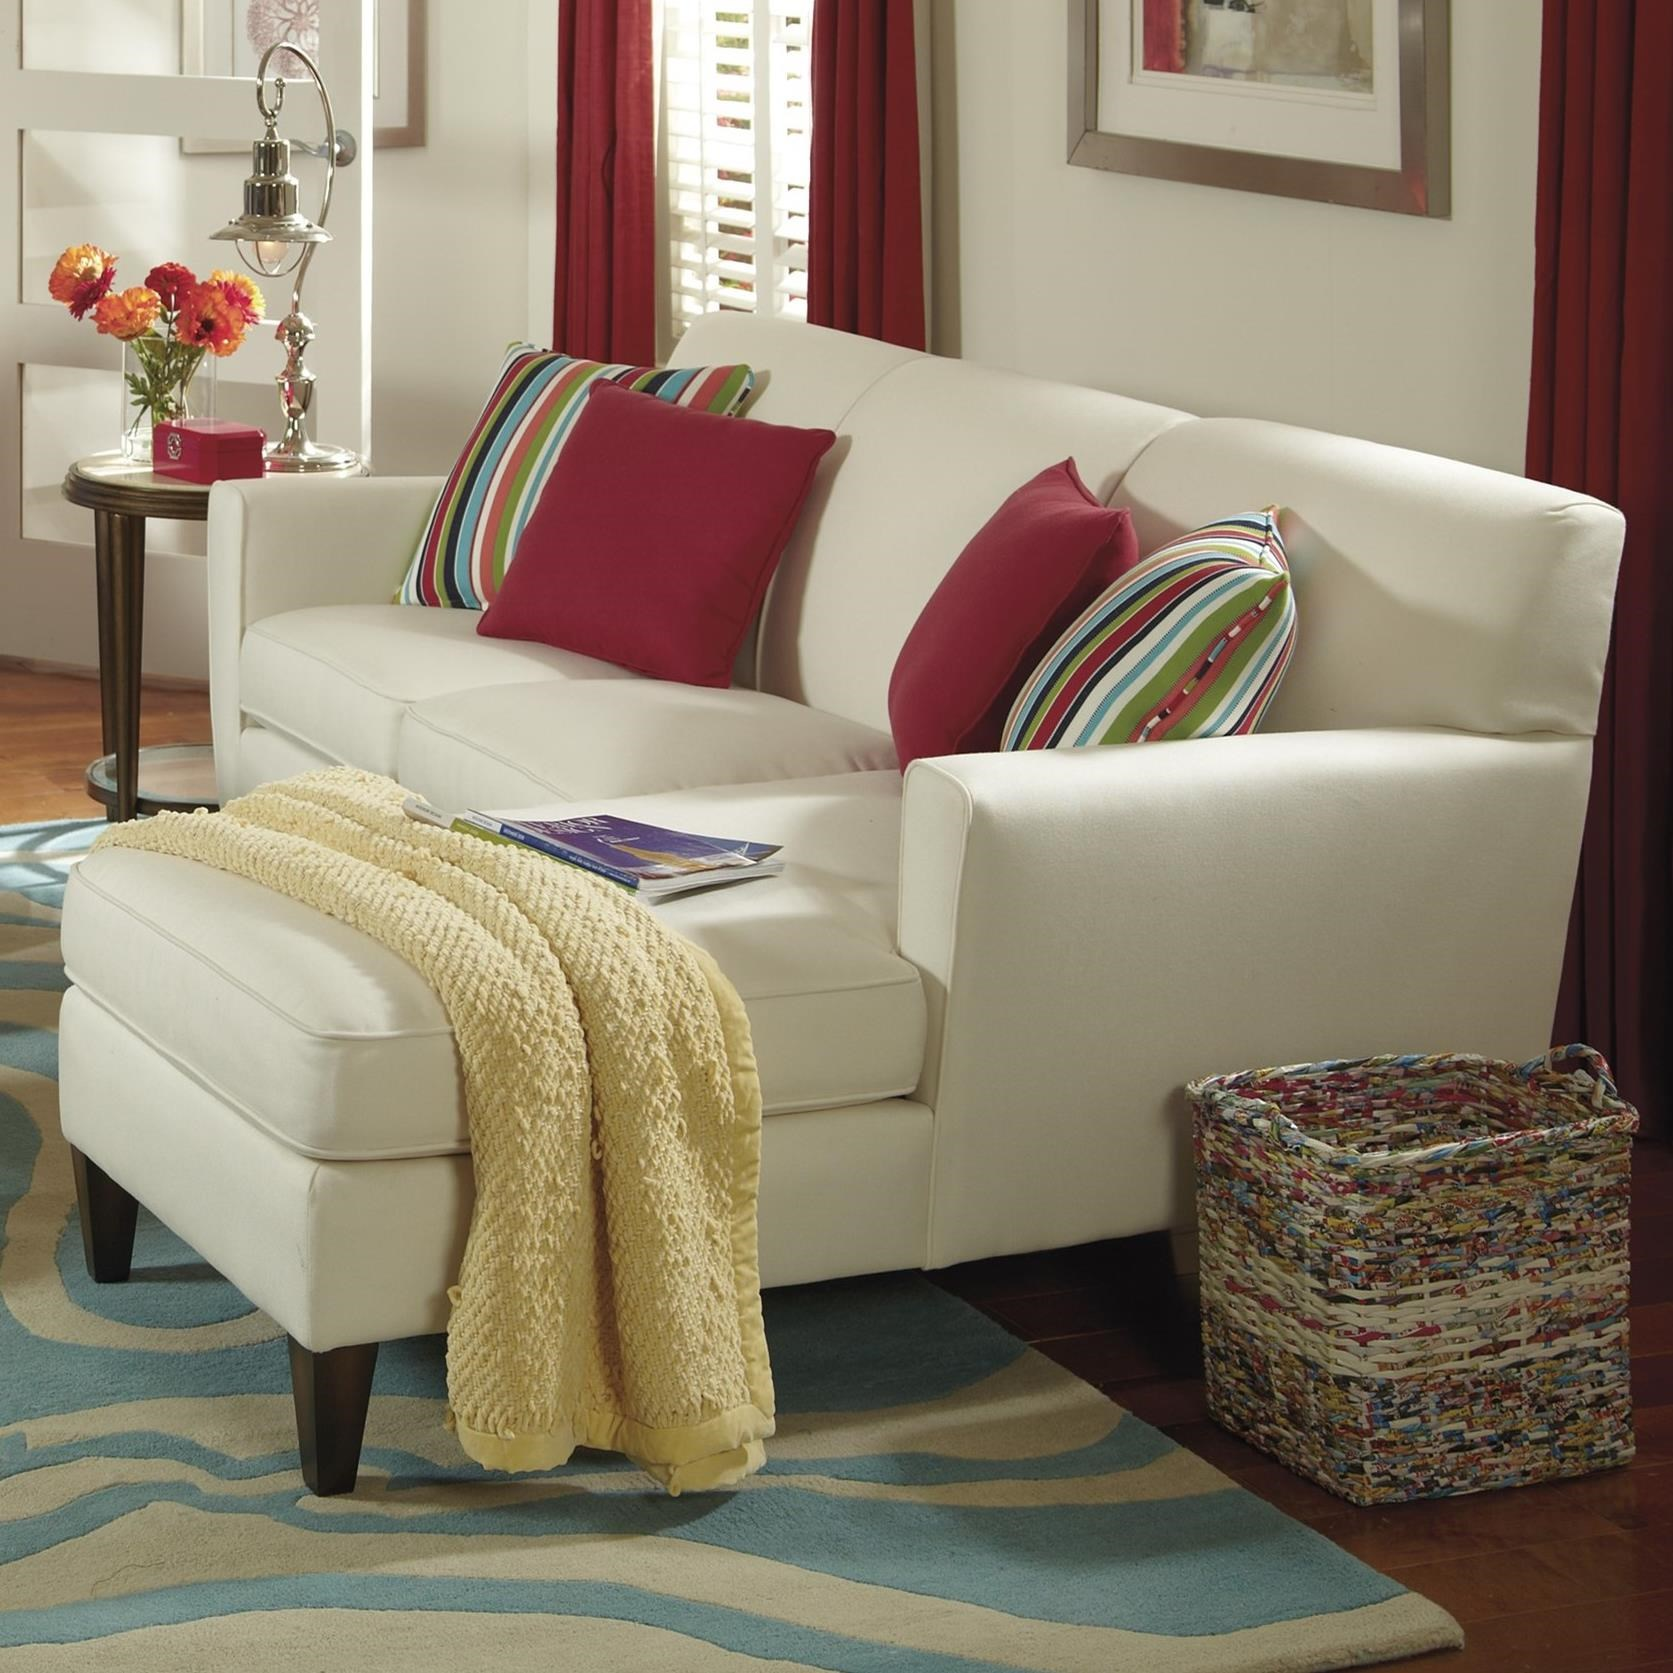 Digby Sectional Sofa by Flexsteel at Steger's Furniture